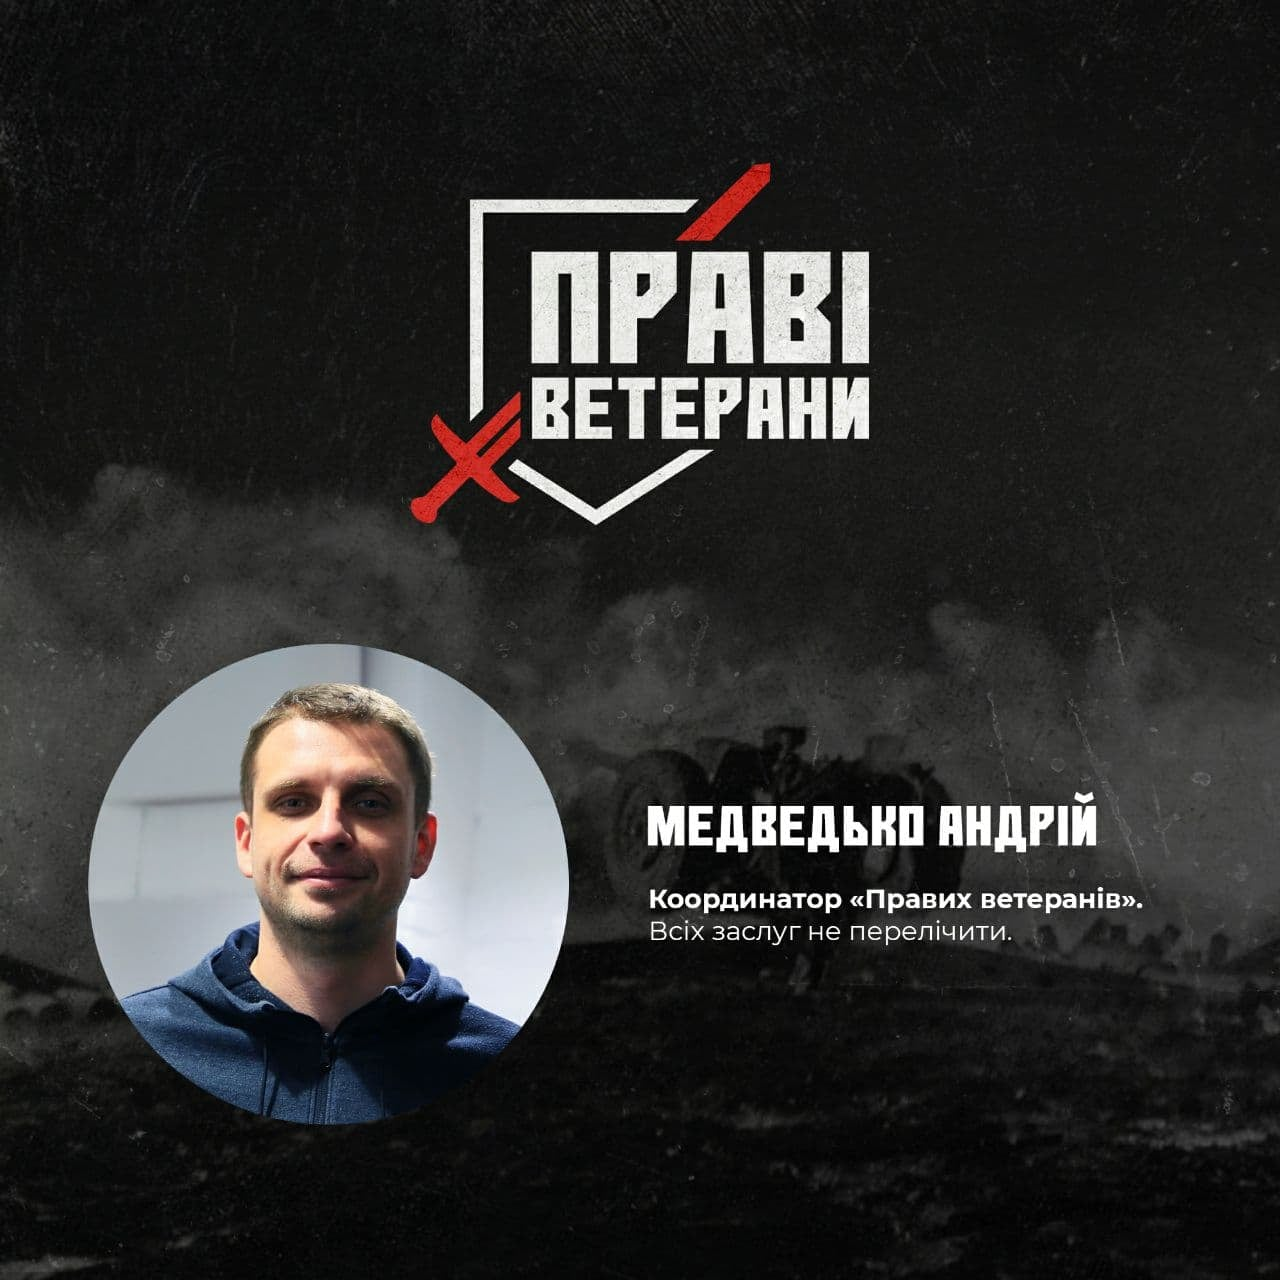 pravi veterany 02 - <b>Far Right Radicals In the Ministry of Veterans Public Council:</b> Who They Are And What They've Done - Заборона